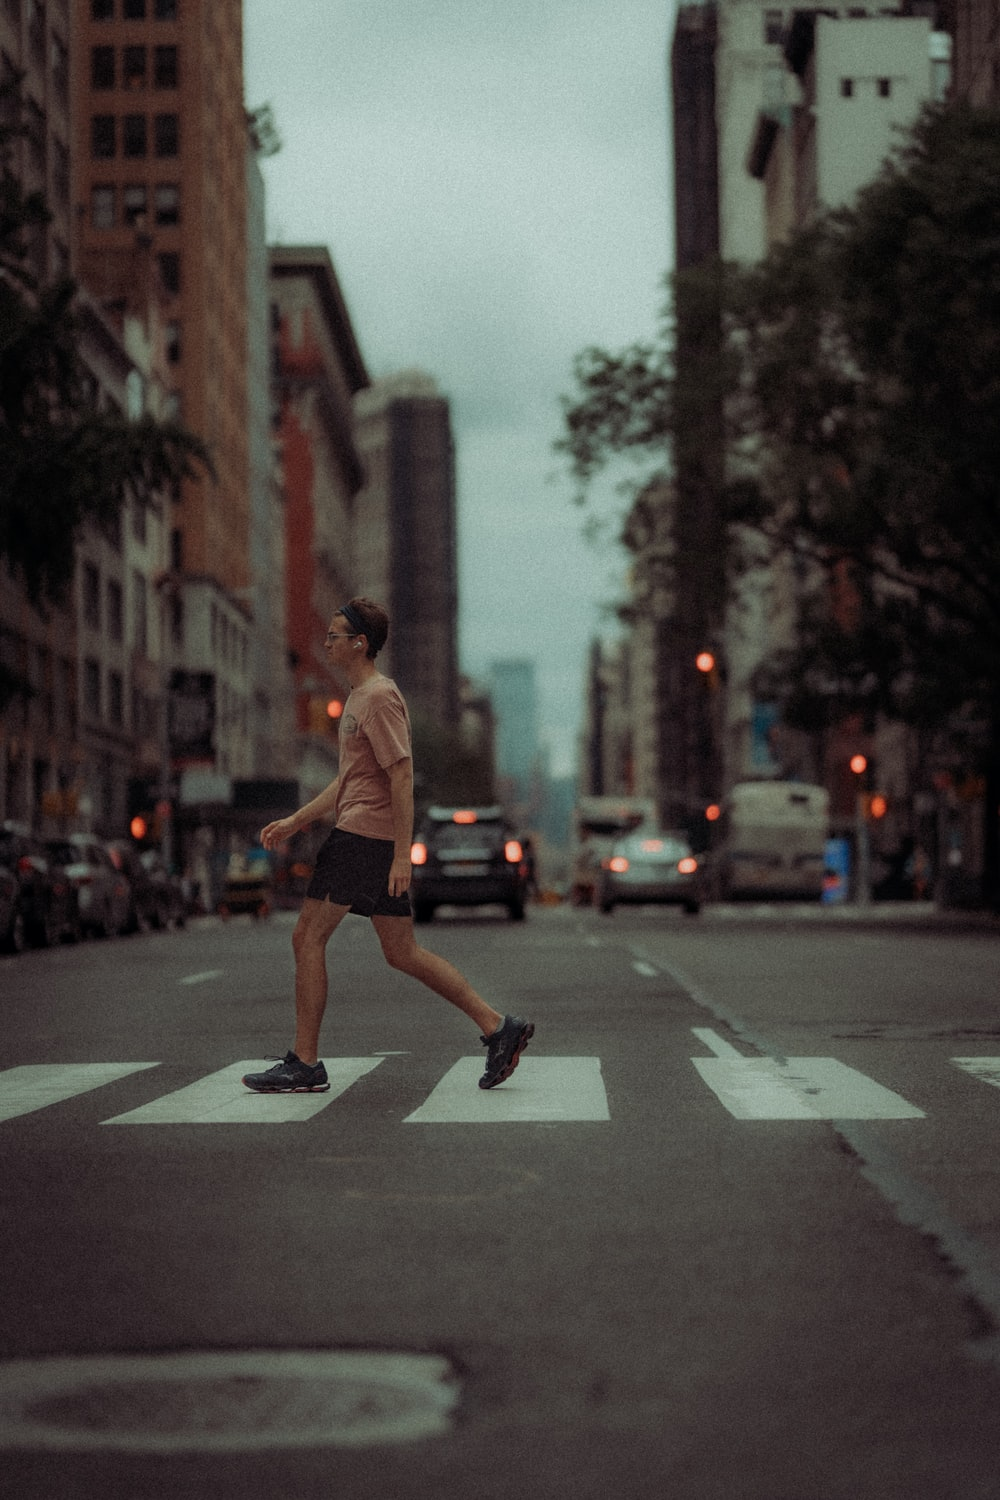 man in brown shirt and black shorts running on road during daytime